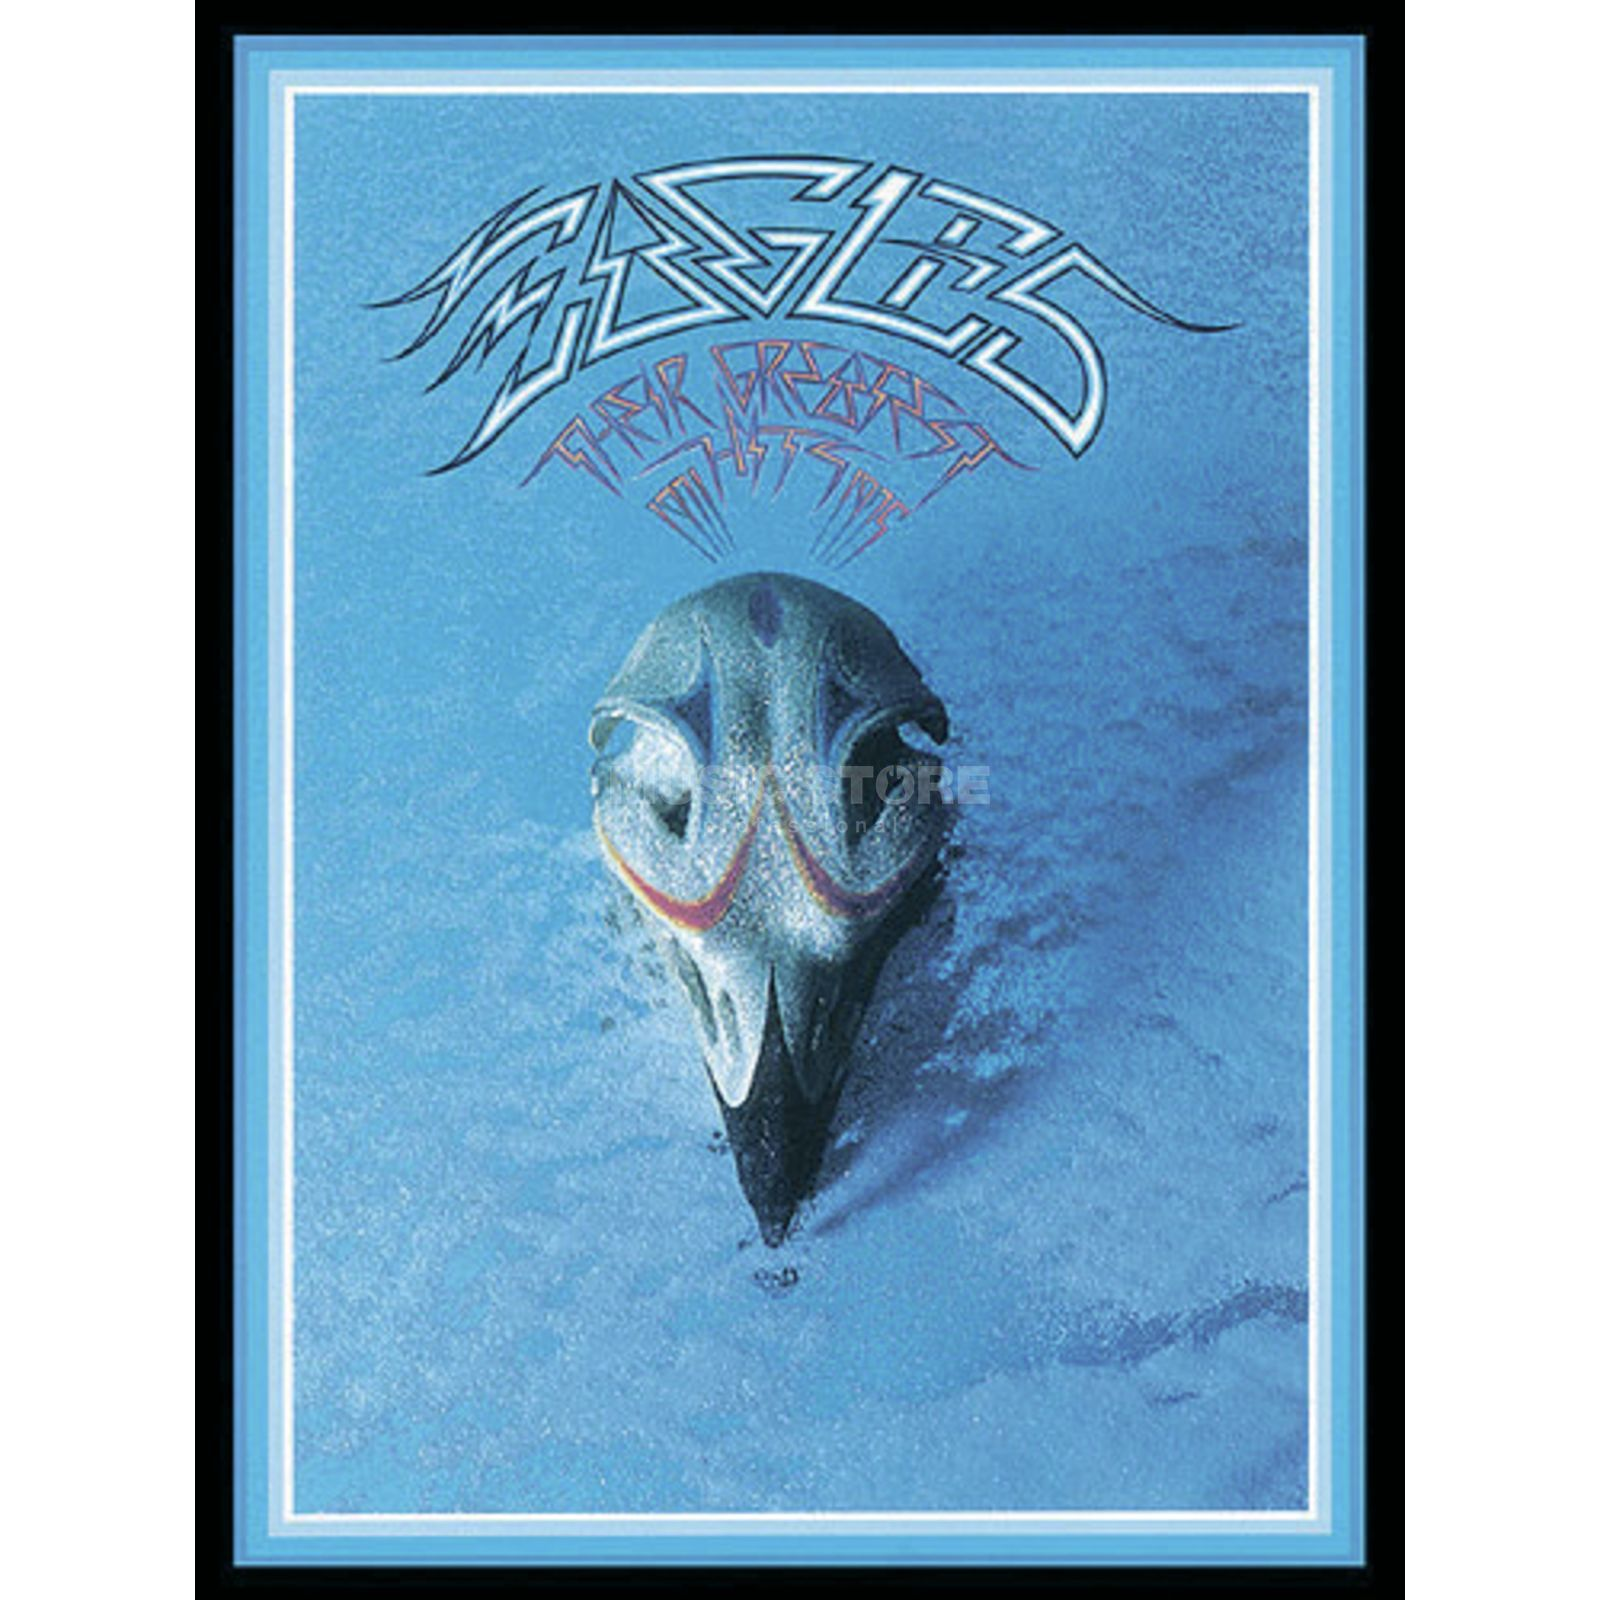 Alfred Music Eagles - Greatest Hits 1971 - 1975 PVG Produktbild